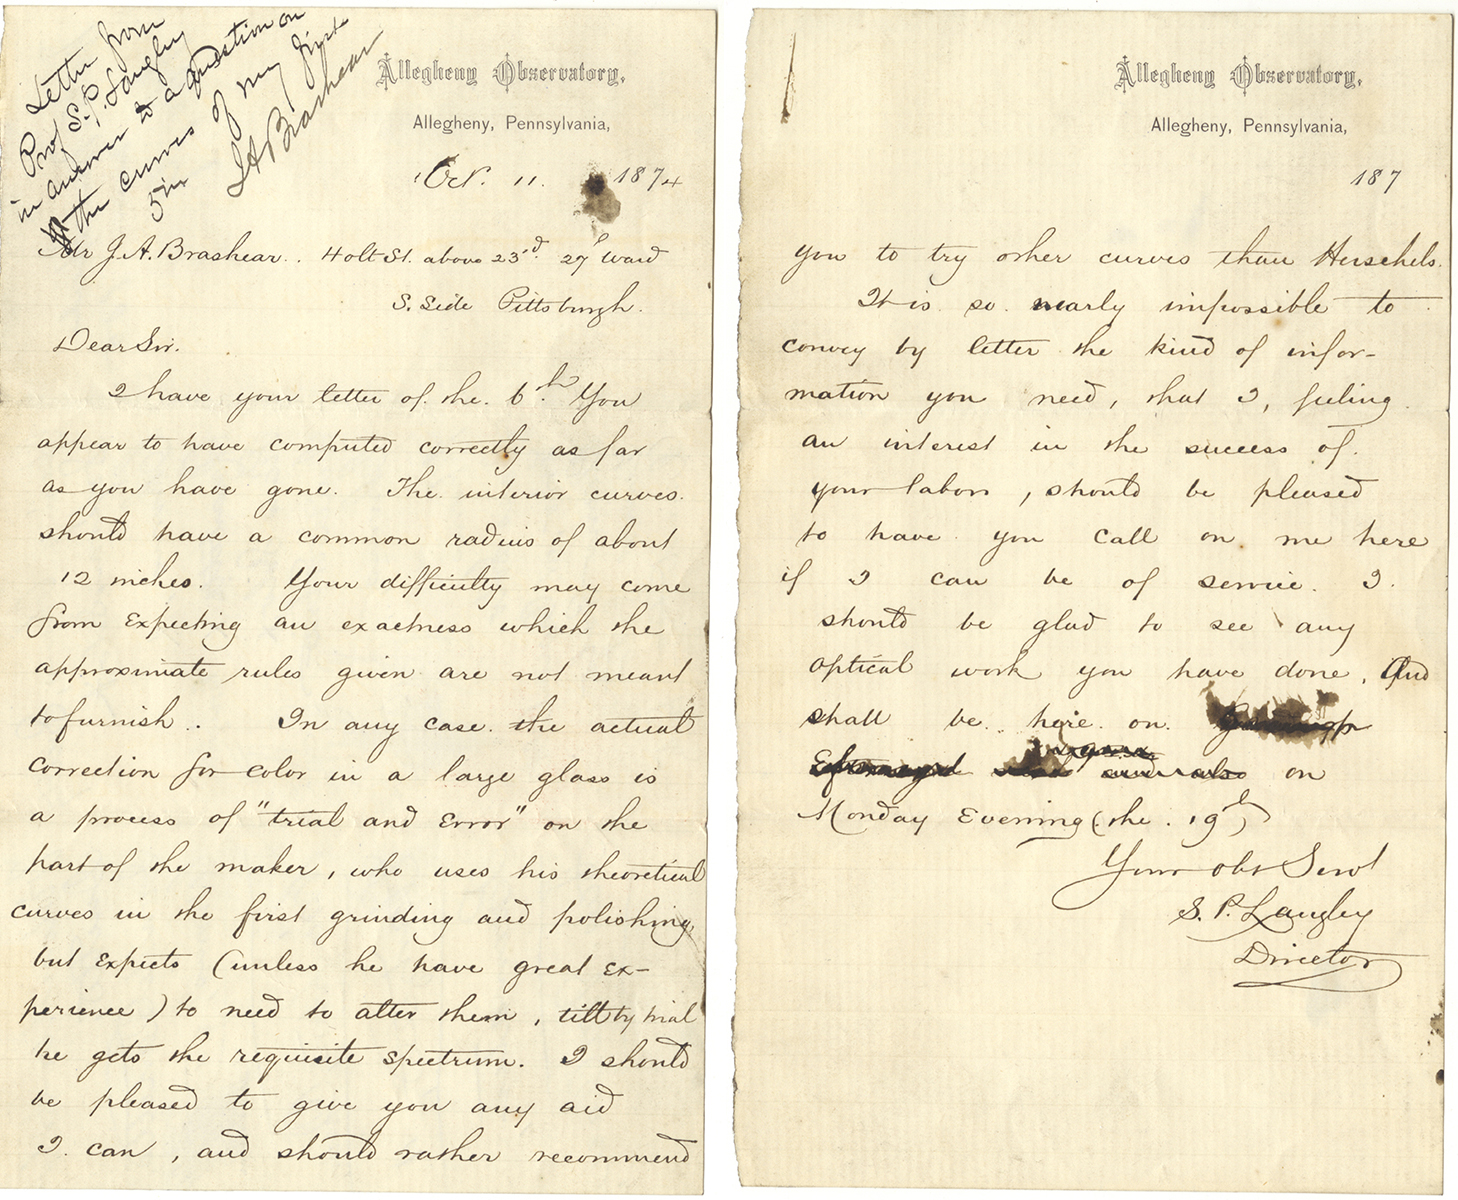 Letter dated October 11, 1874, from Samuel P. Langley to John Brashear, Heinz History Center.